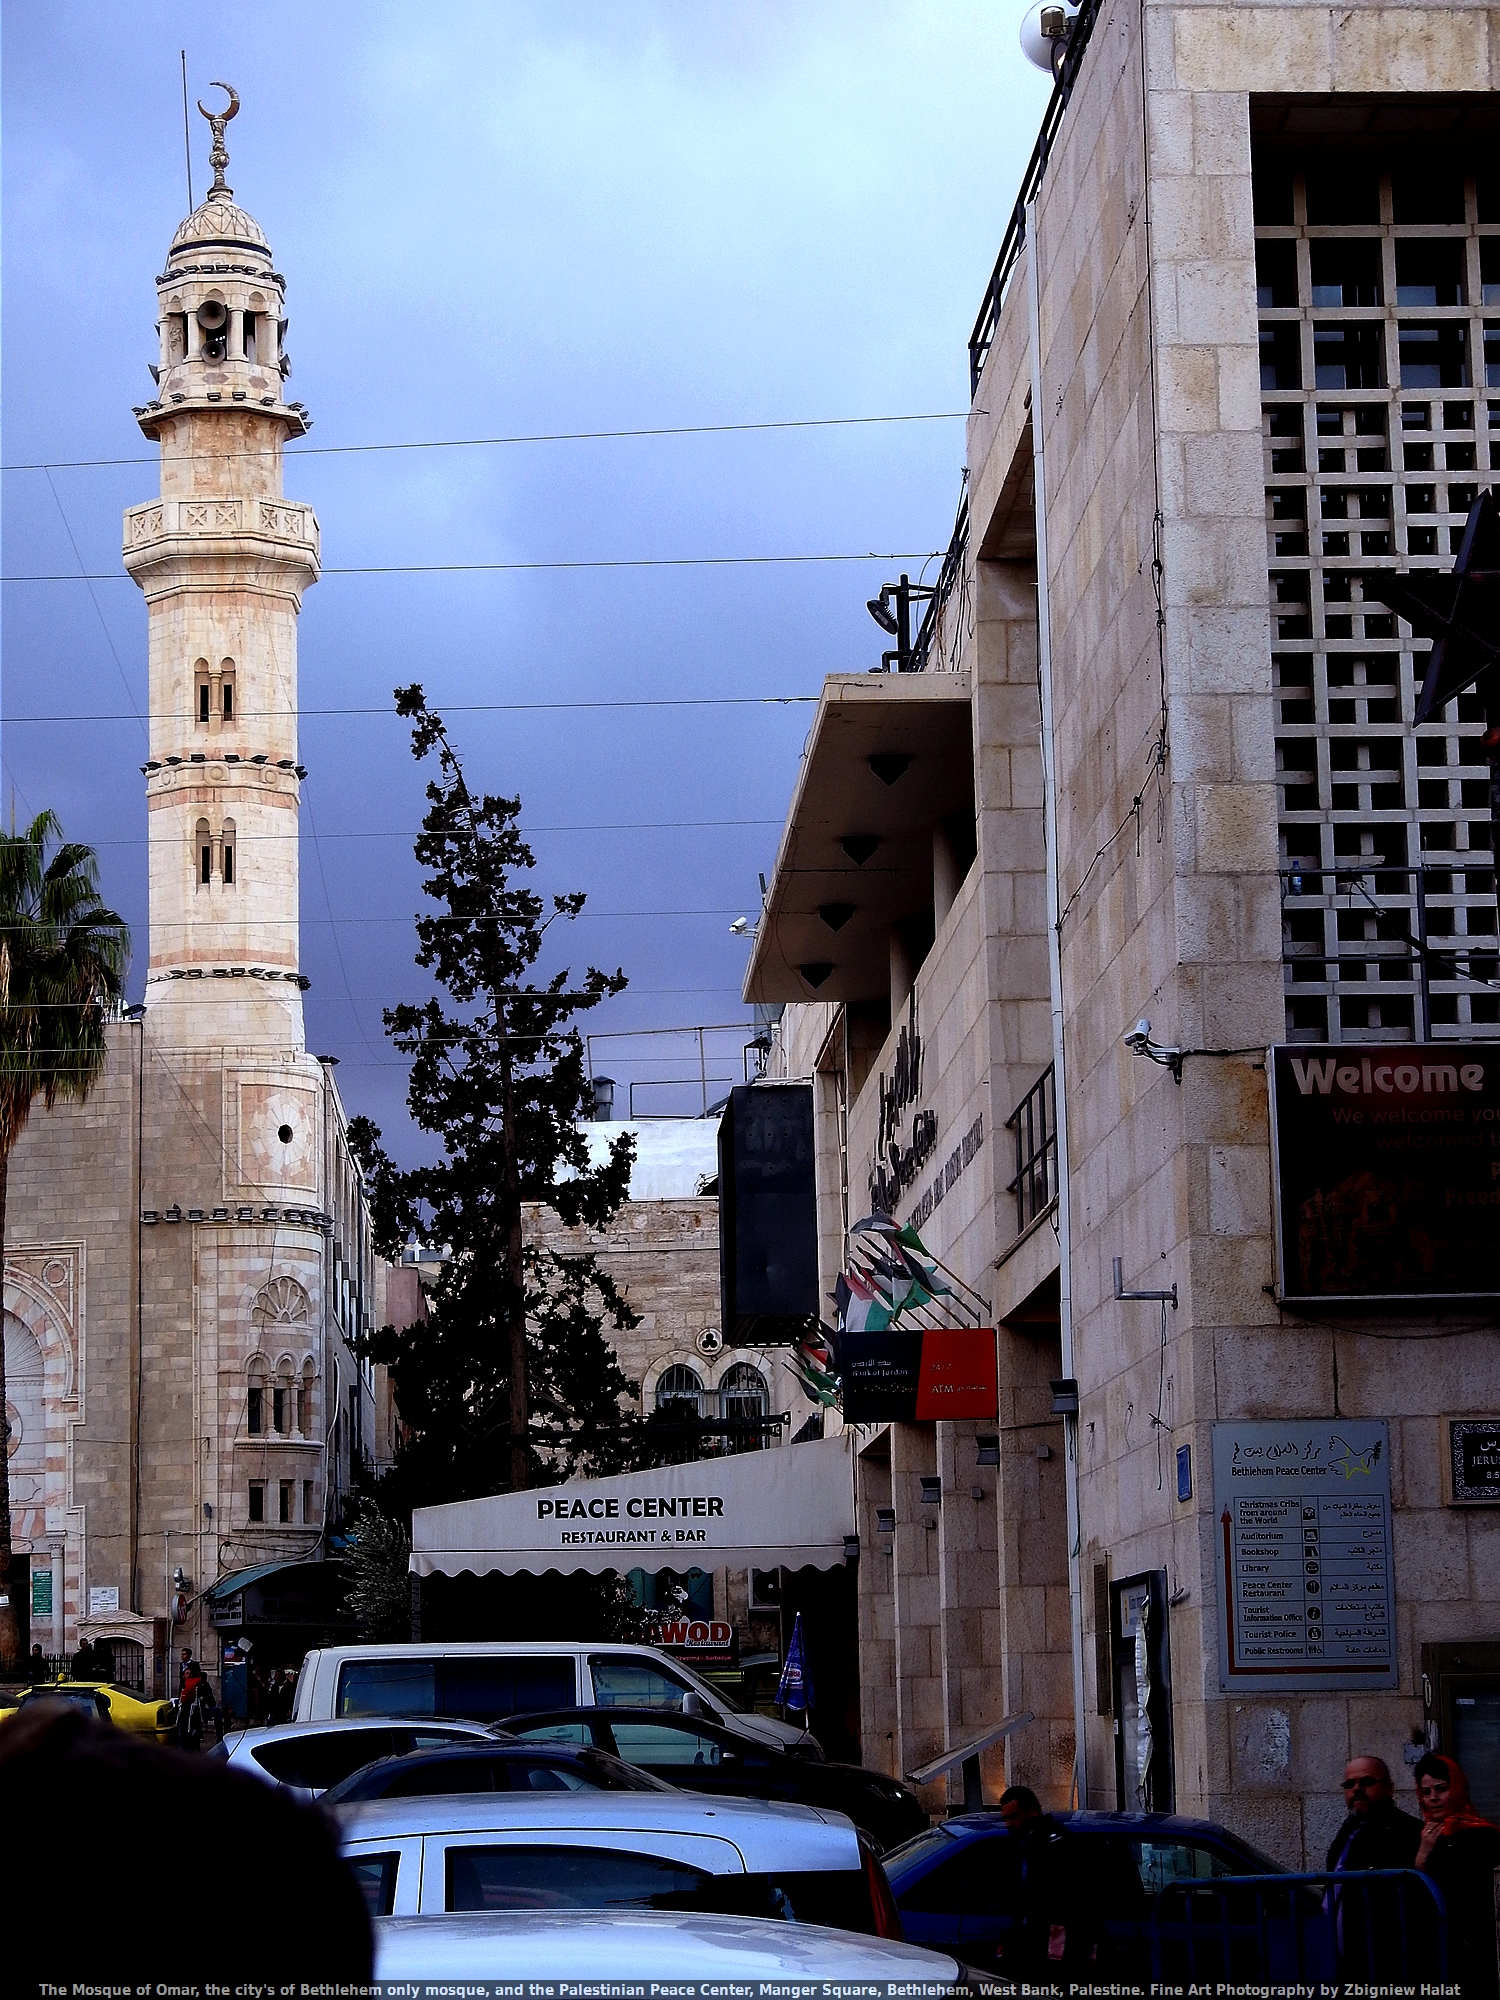 The Mosque of Omar, the city's of Bethlehem only mosque, and the Palestinian Peace Center, Manger Square, Bethlehem, West Bank, Palestine. Fine Art Photography by Zbigniew Halat